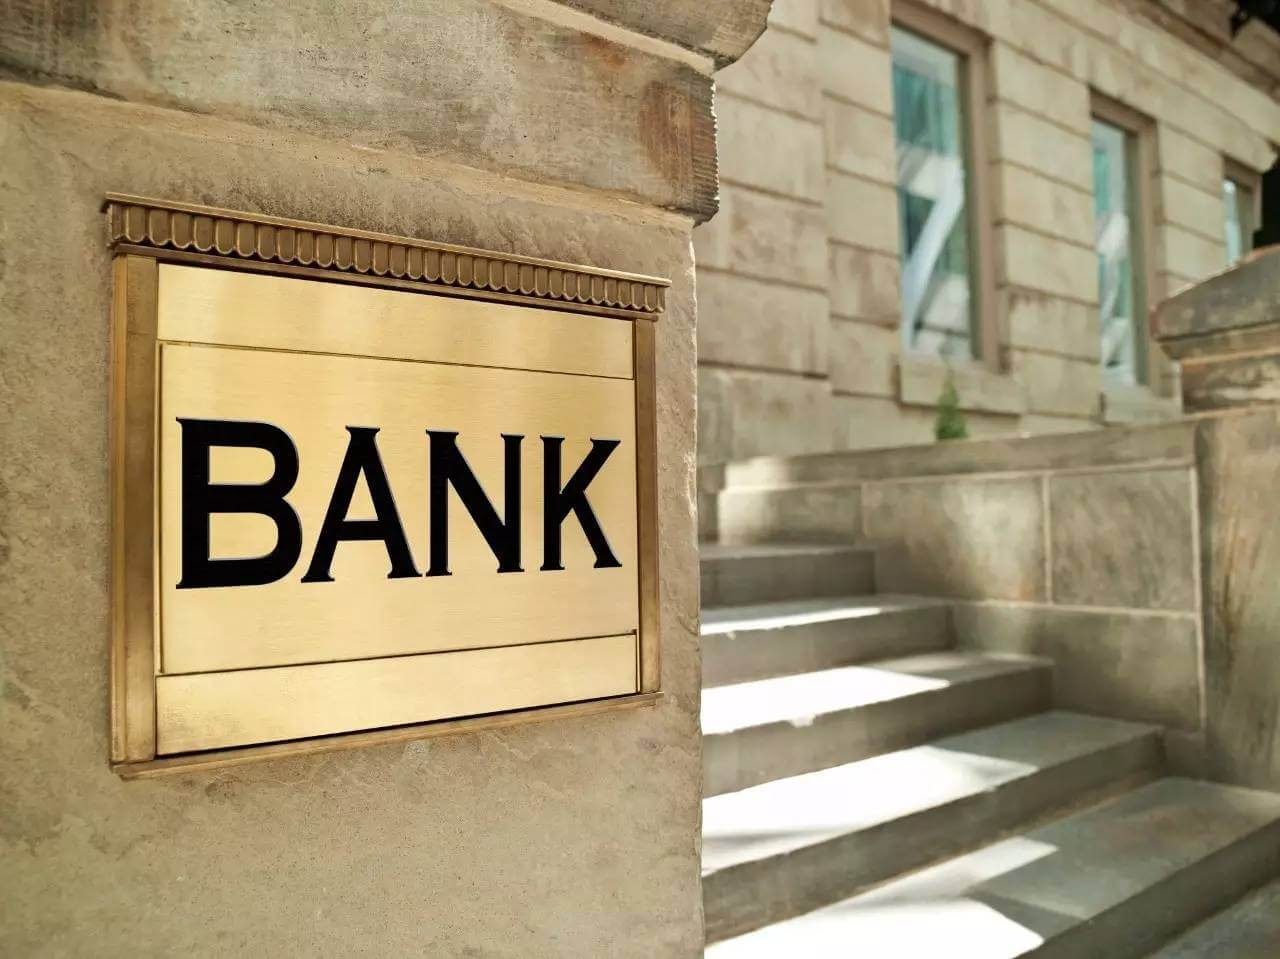 Commercial Property rented to Bank Available for Sale in Jaipur